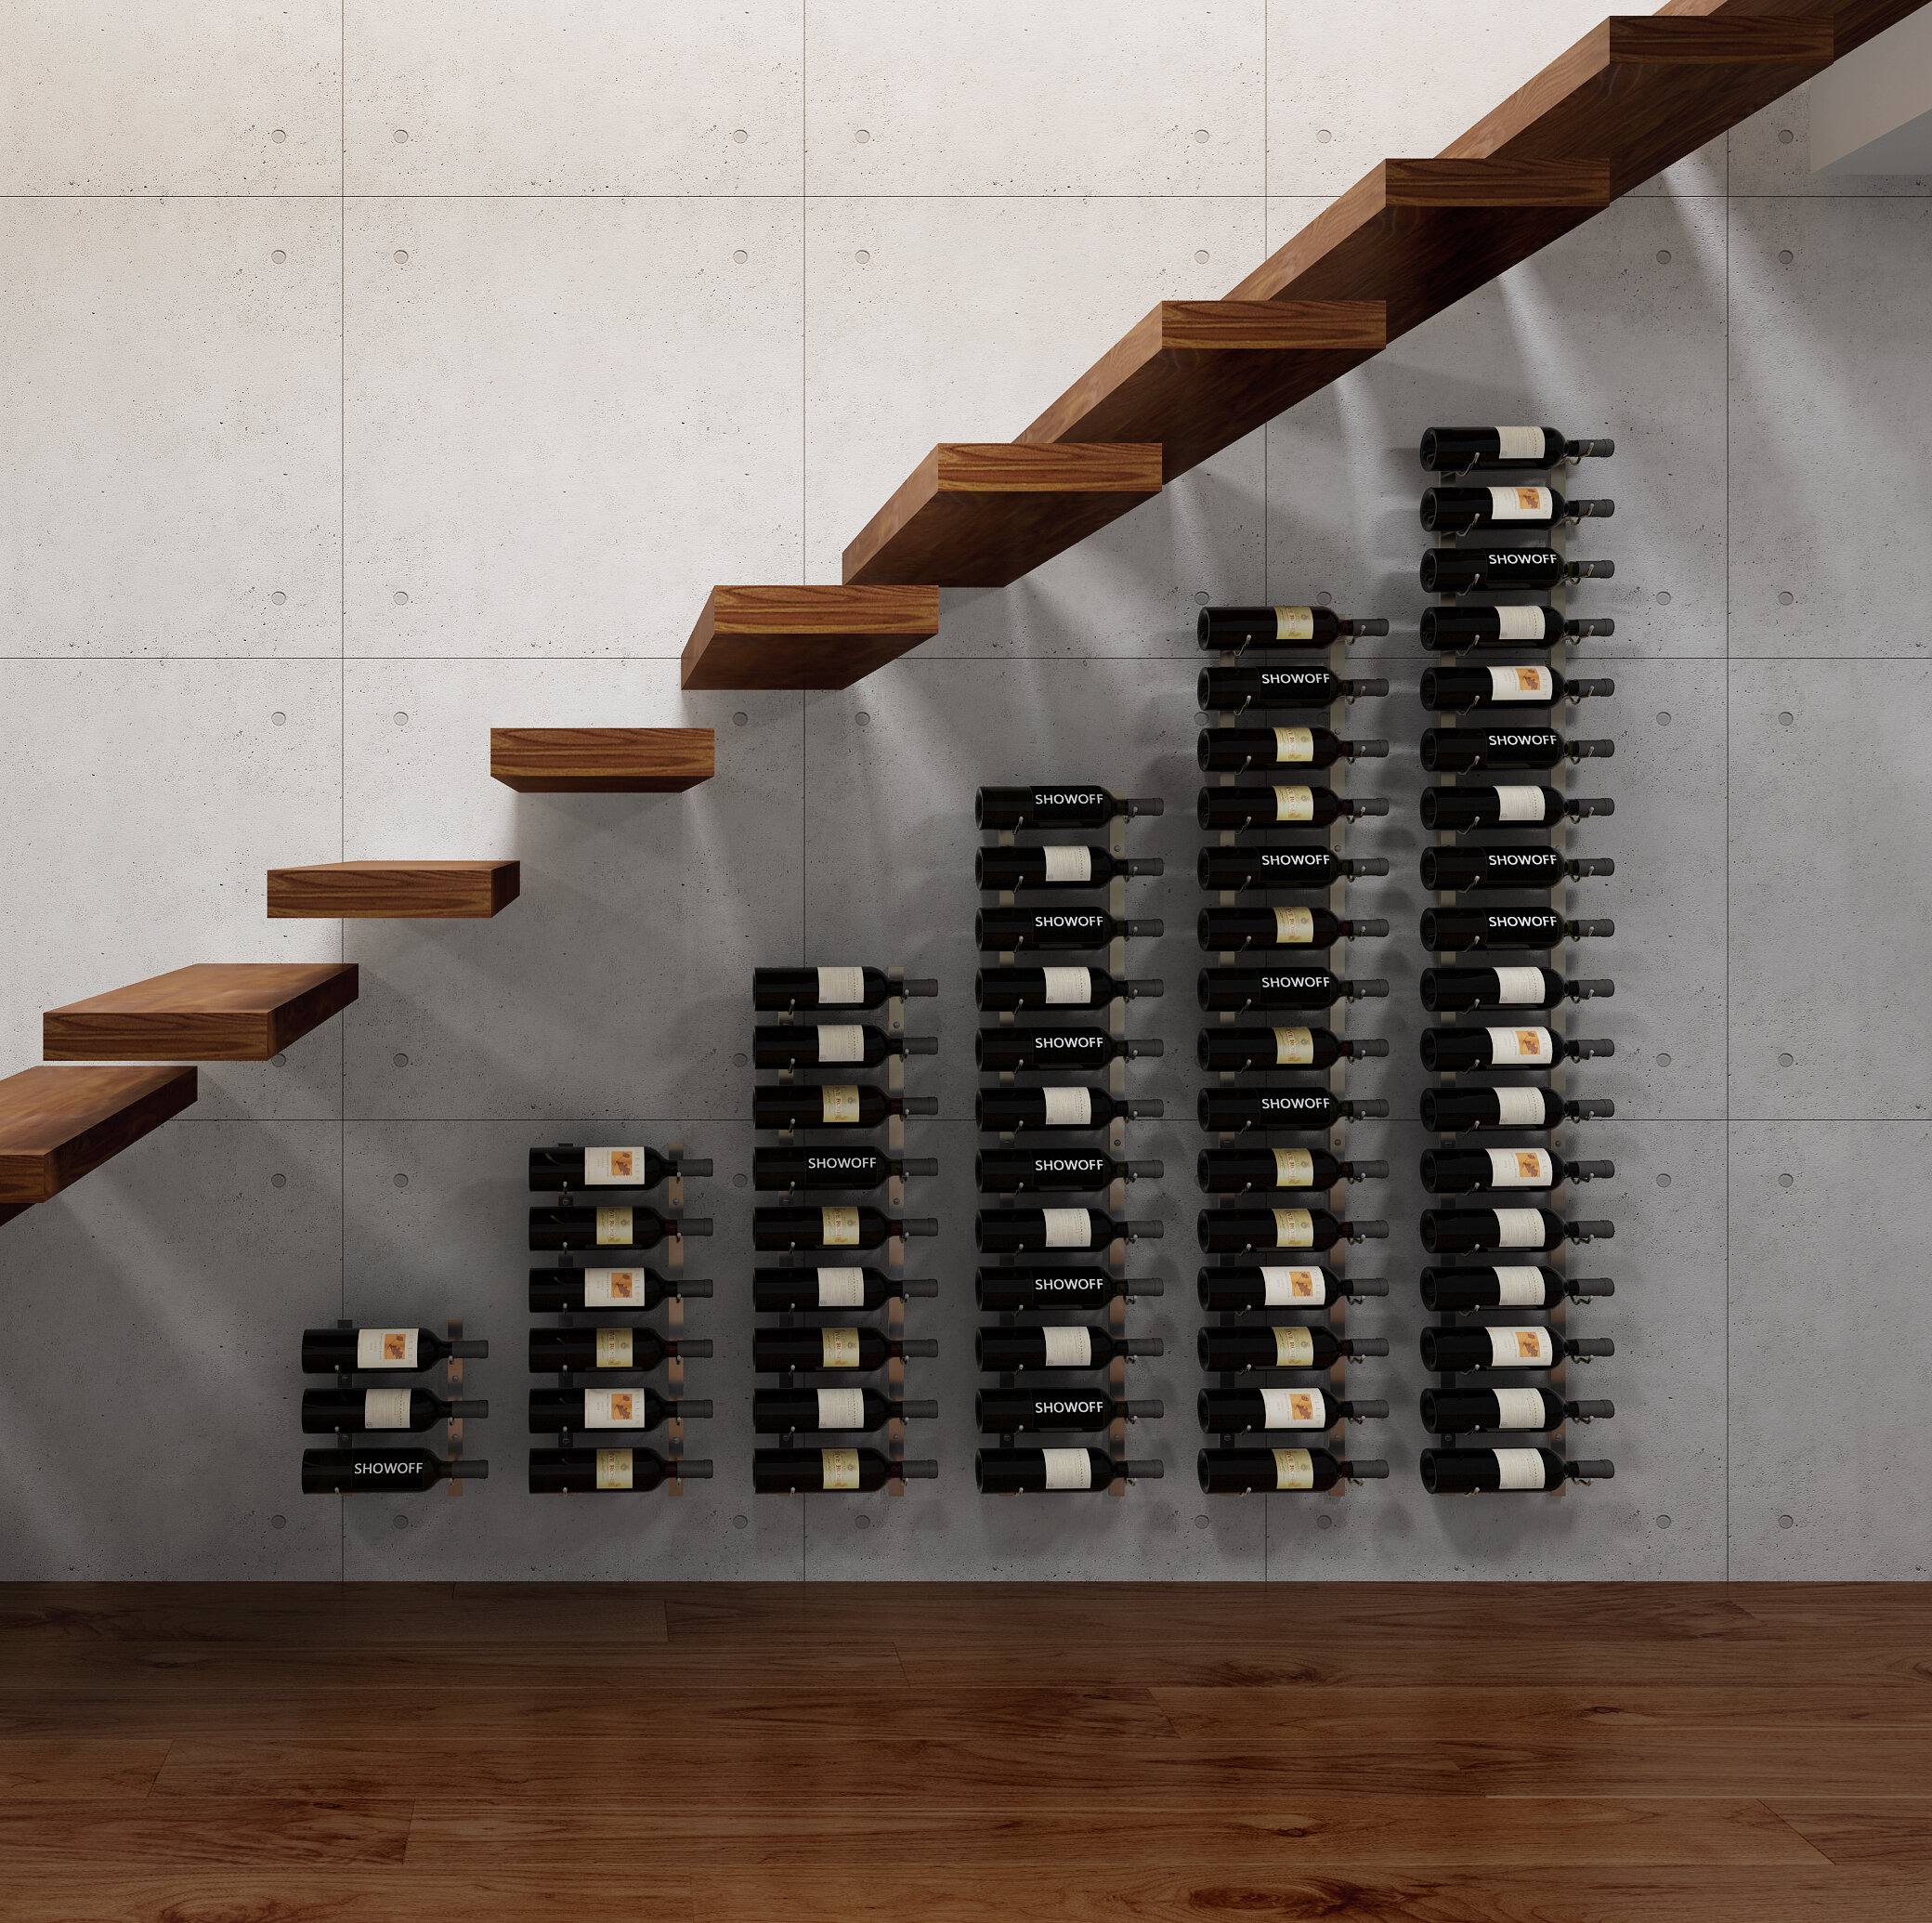 Rebrilliant Indurial Modular Under The Stairs 63 Bottle Wall Mounted Wine Bottle Rack Reviews Wayfair